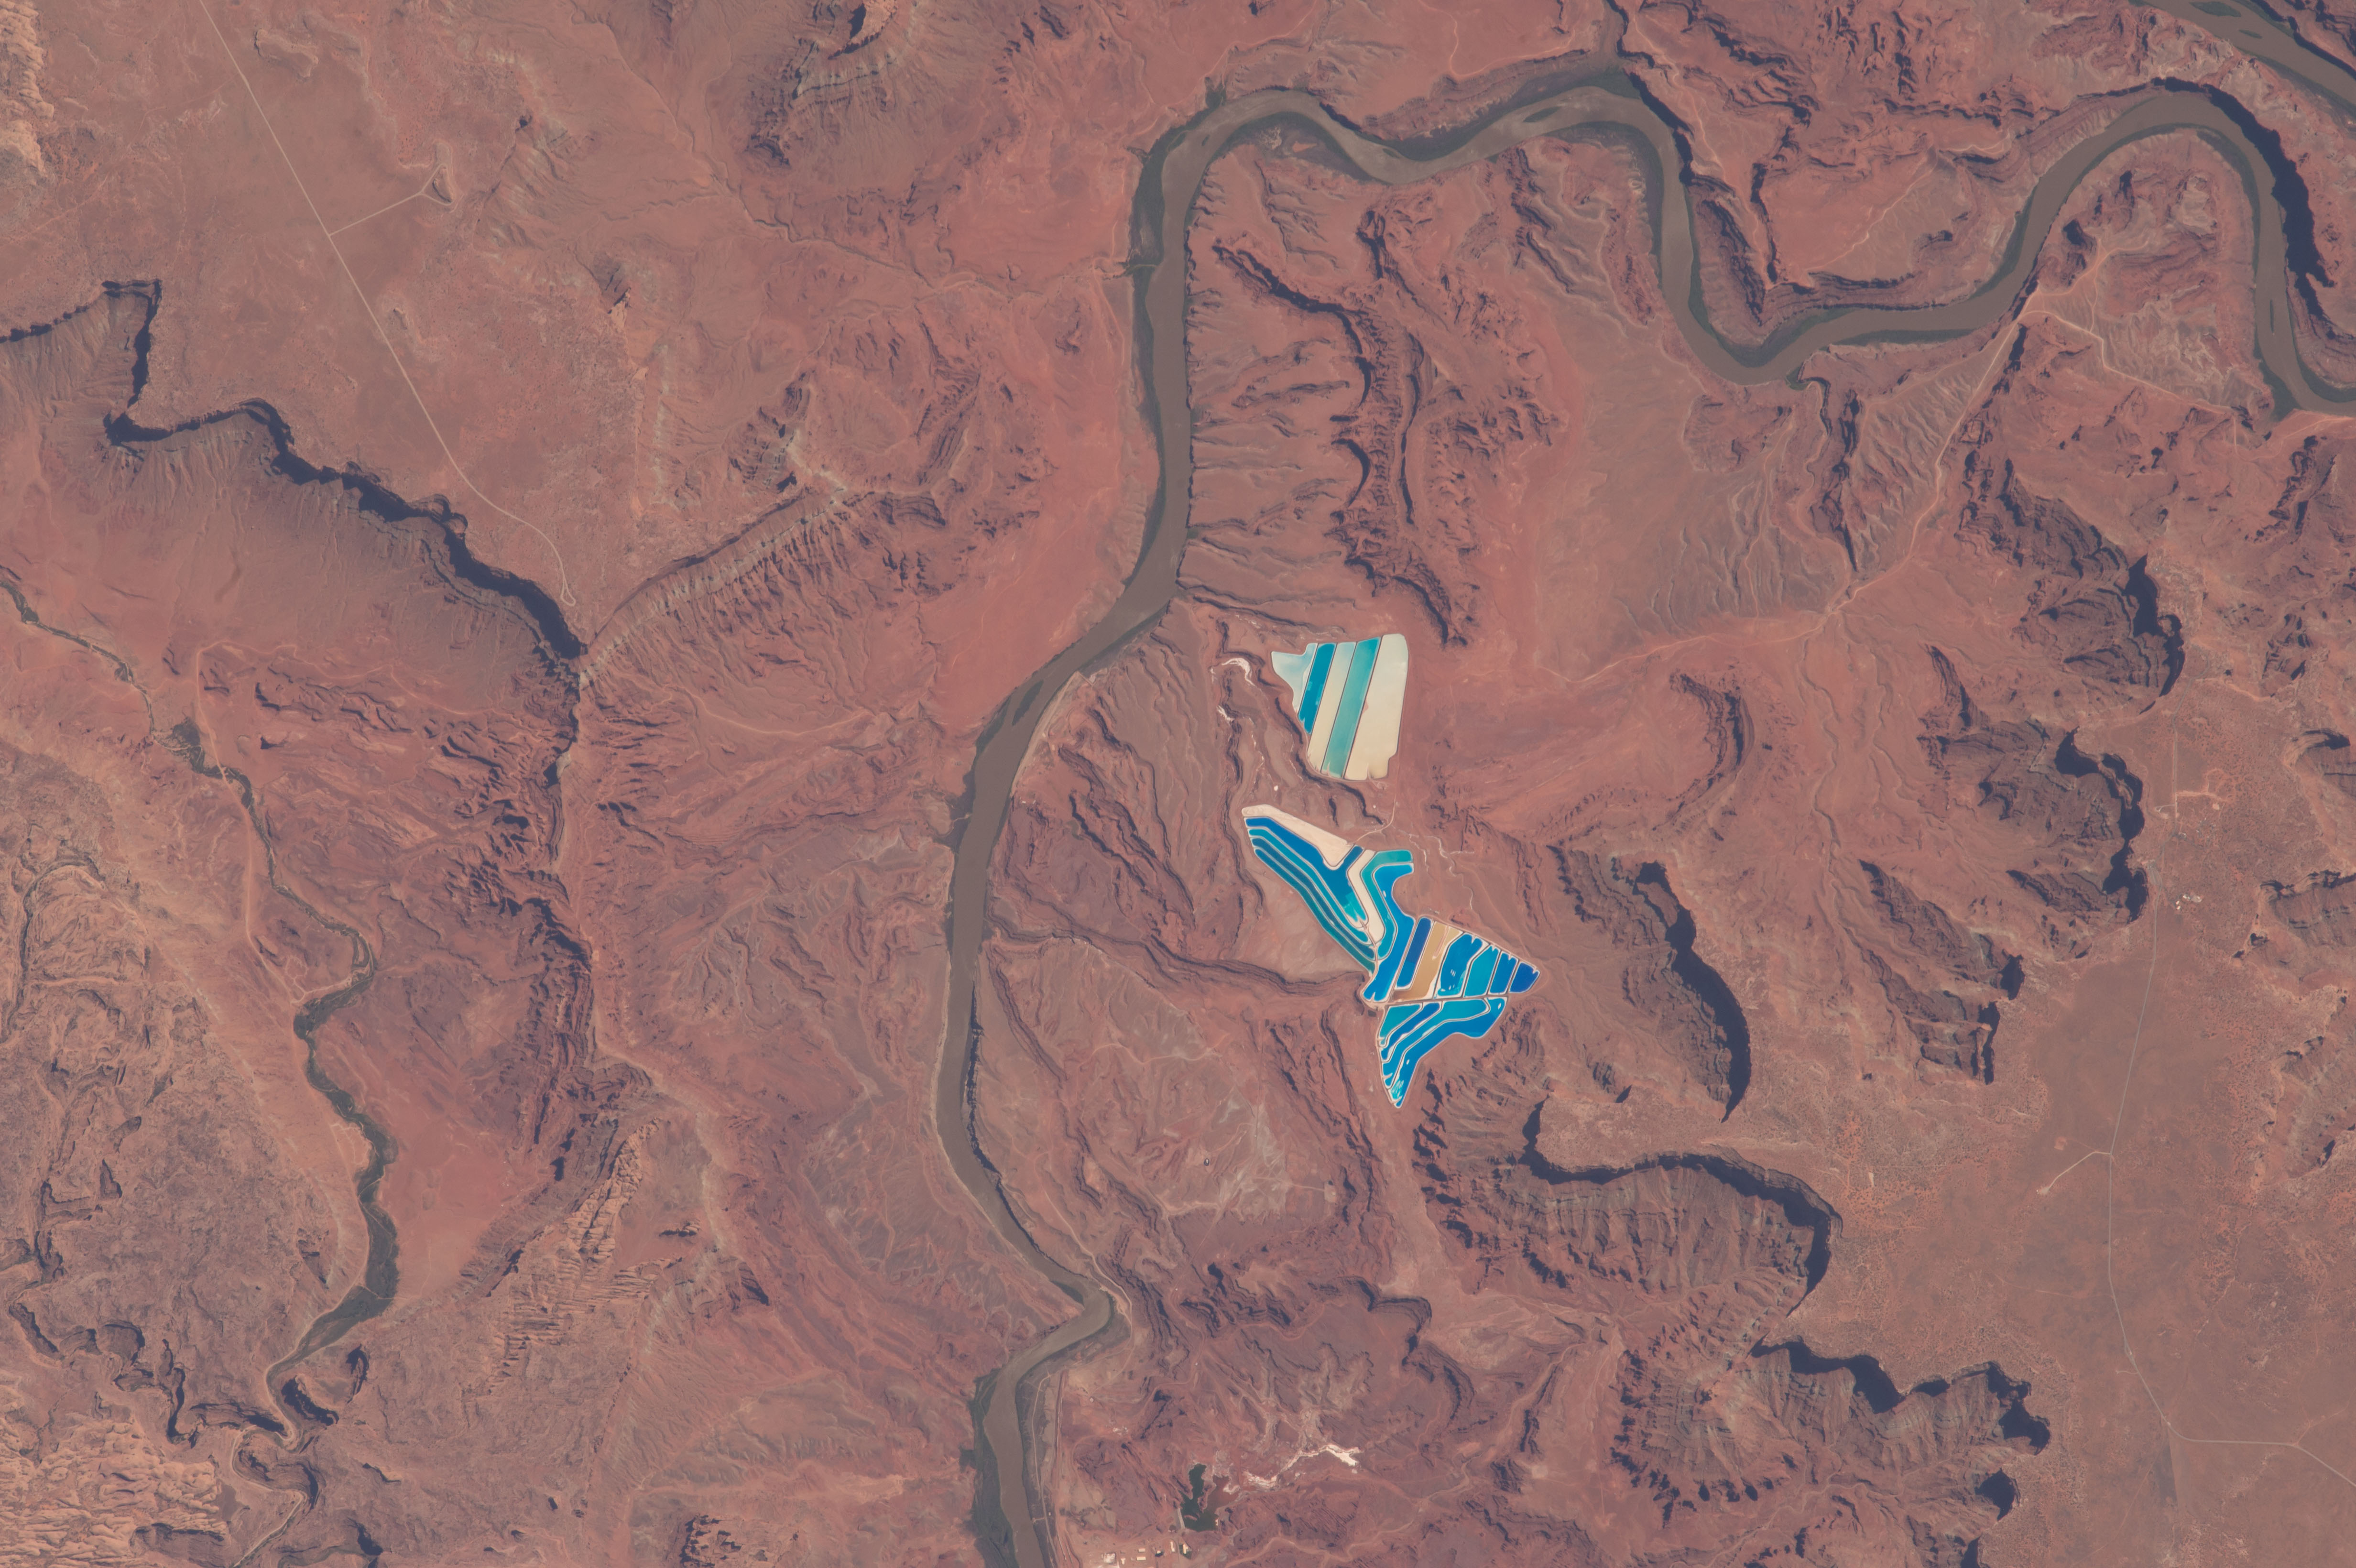 Solar evaporation ponds outside the city of Moab, Utah. There are 23 colourful ponds spread across 400 acres. They are part of a large operation to mine potassium chloride (Nasa)